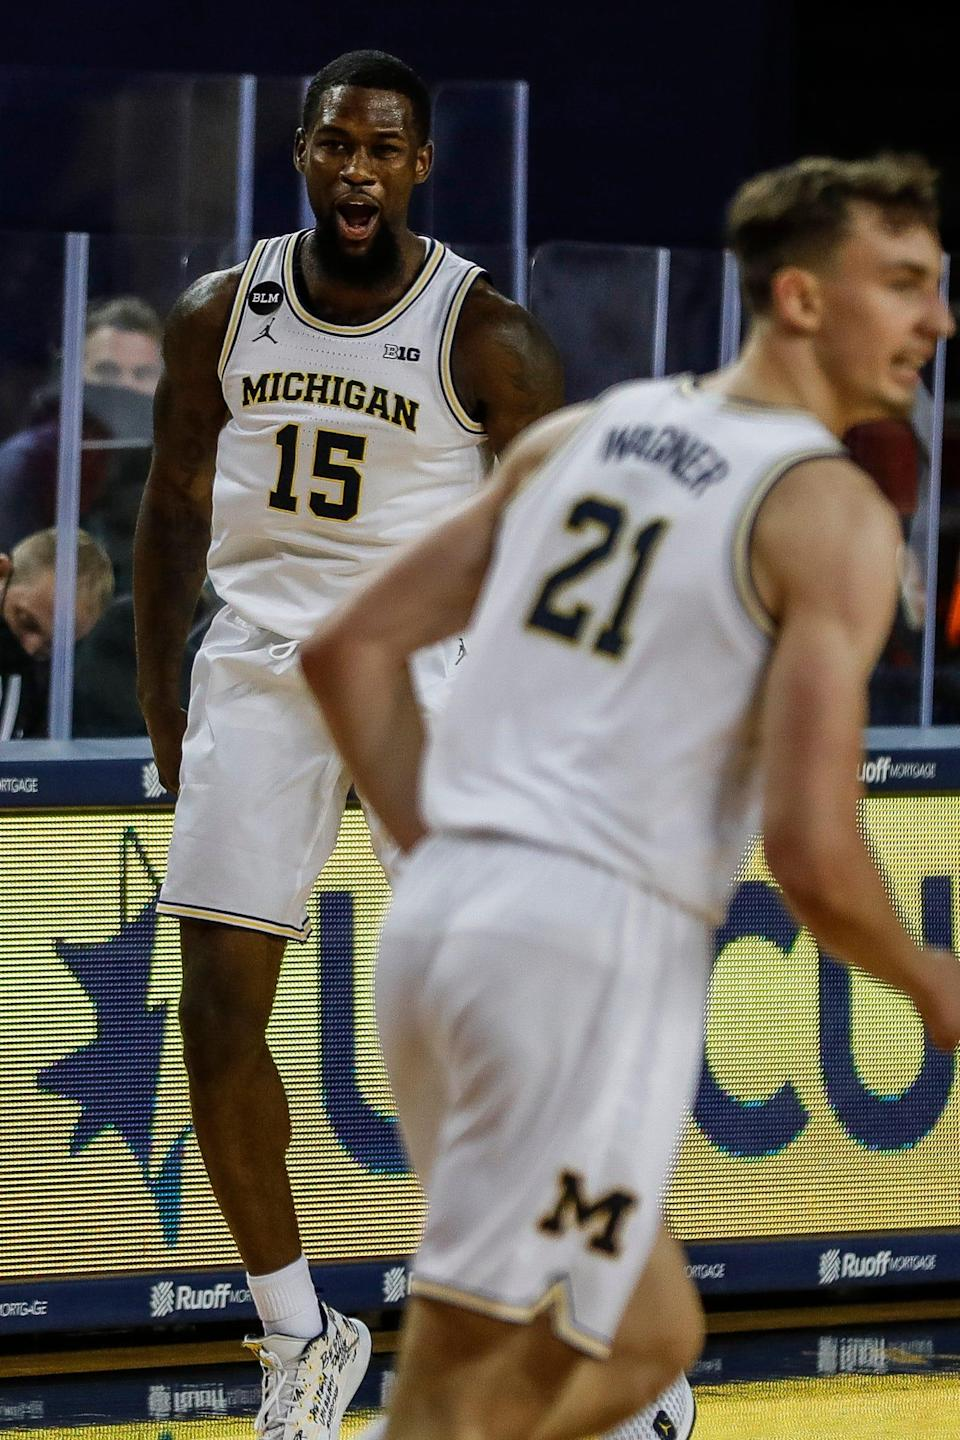 Michigan's Chaundee Brown (15) celebrates a 3-point basket against Bowling Green during the season opener at Crisler Center in Ann Arbor, Wednesday, Nov. 25, 2020.